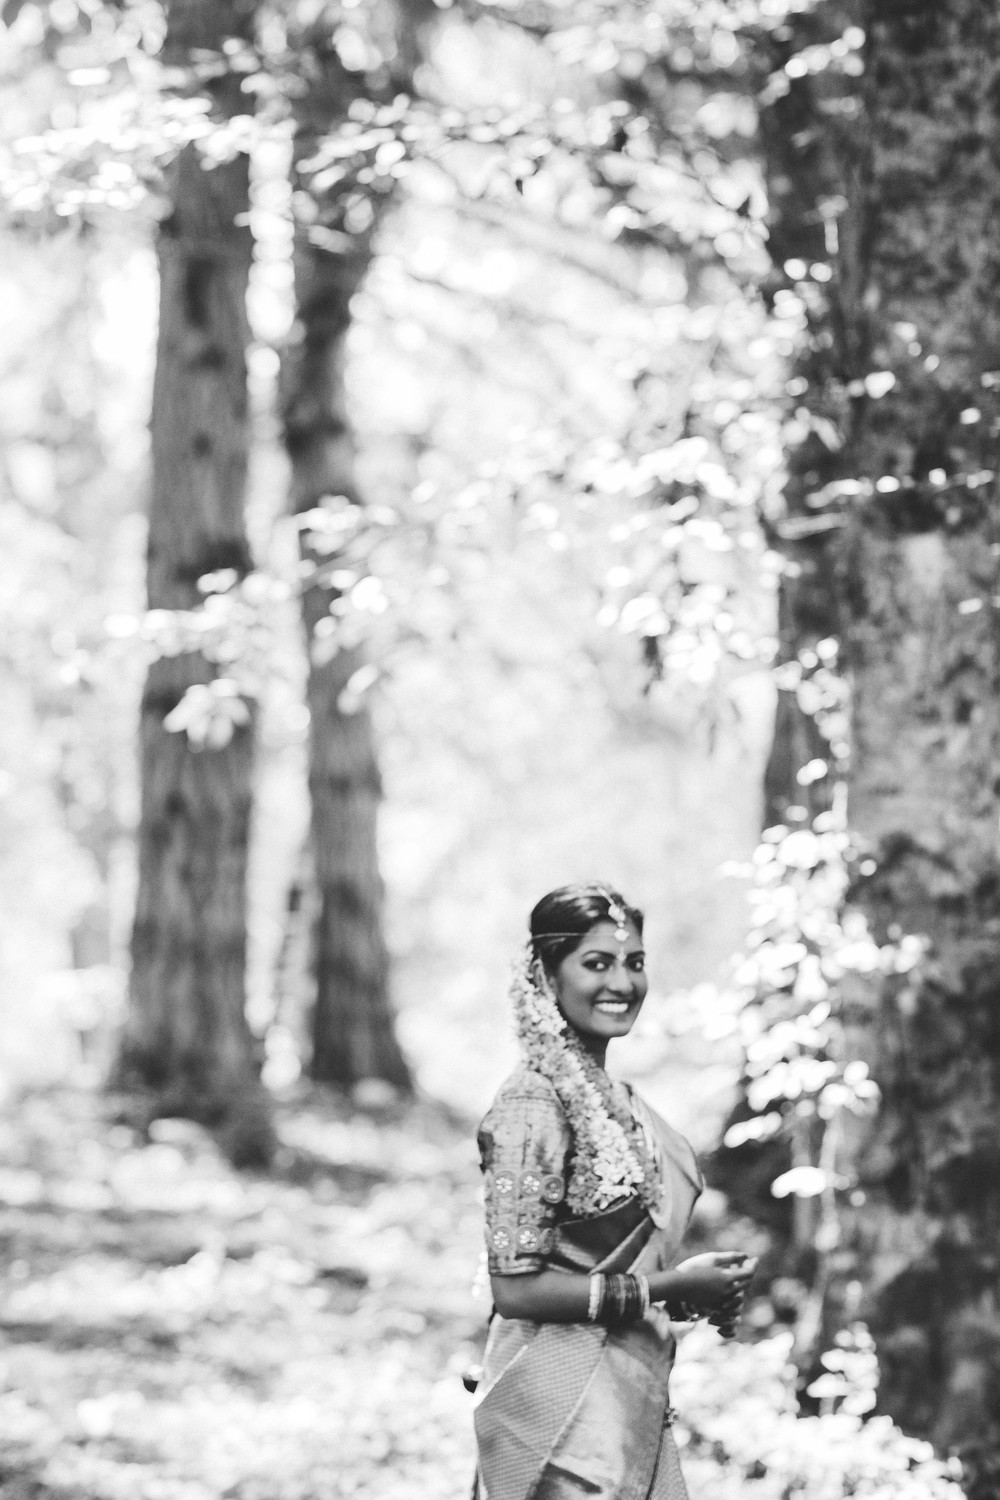 Hima+Dan_Wedding_Seattle+Couple_Kingston_6112016_10.jpg